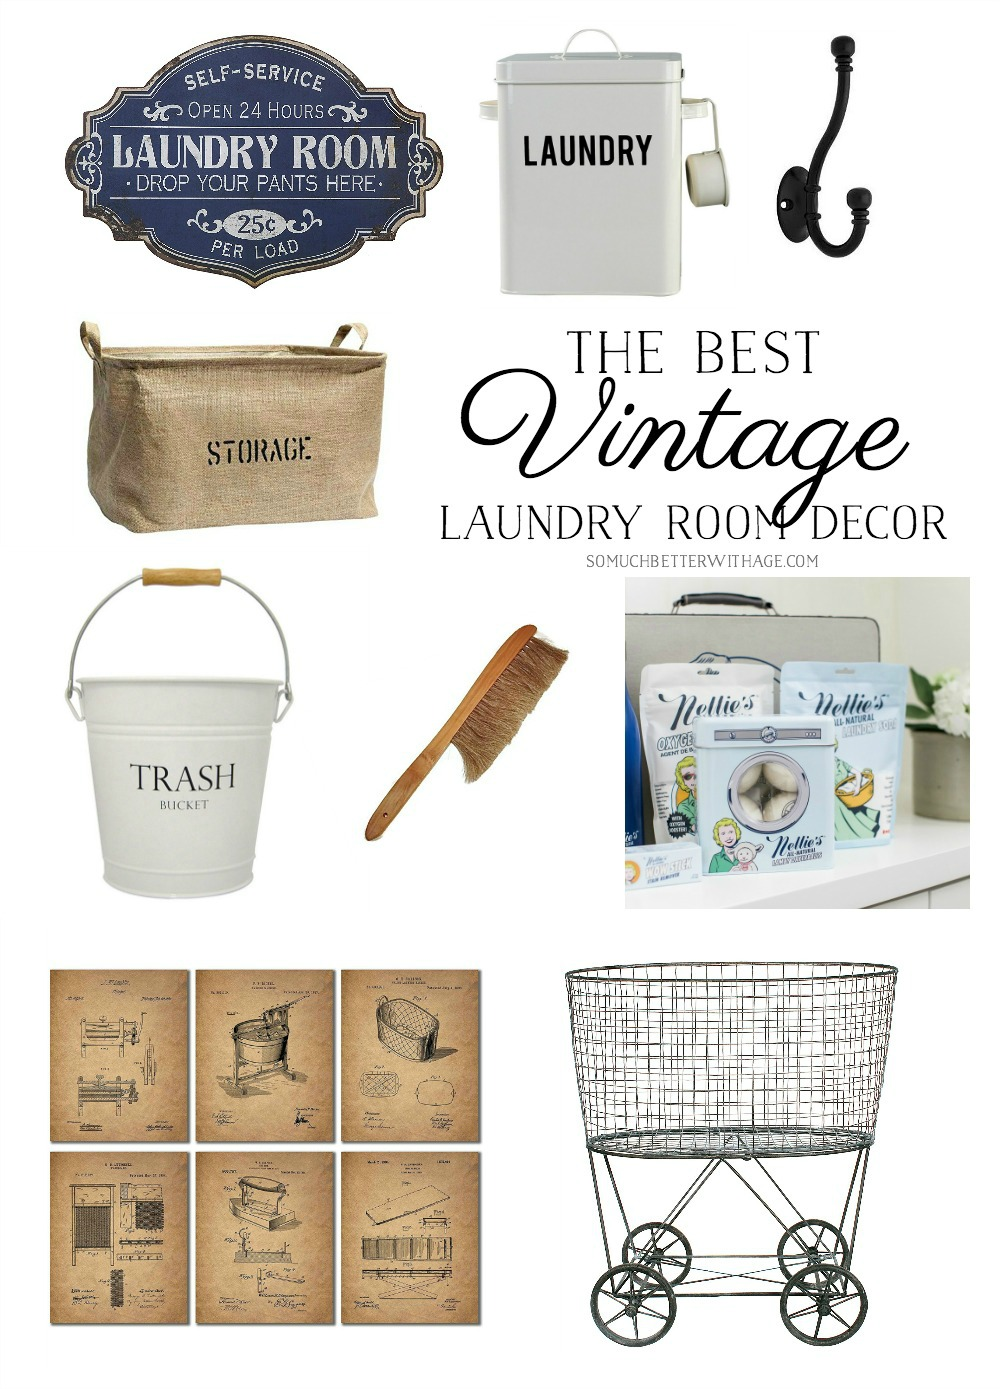 The Best Vintage Laundry Room Decor + Giveaway | So Much ...